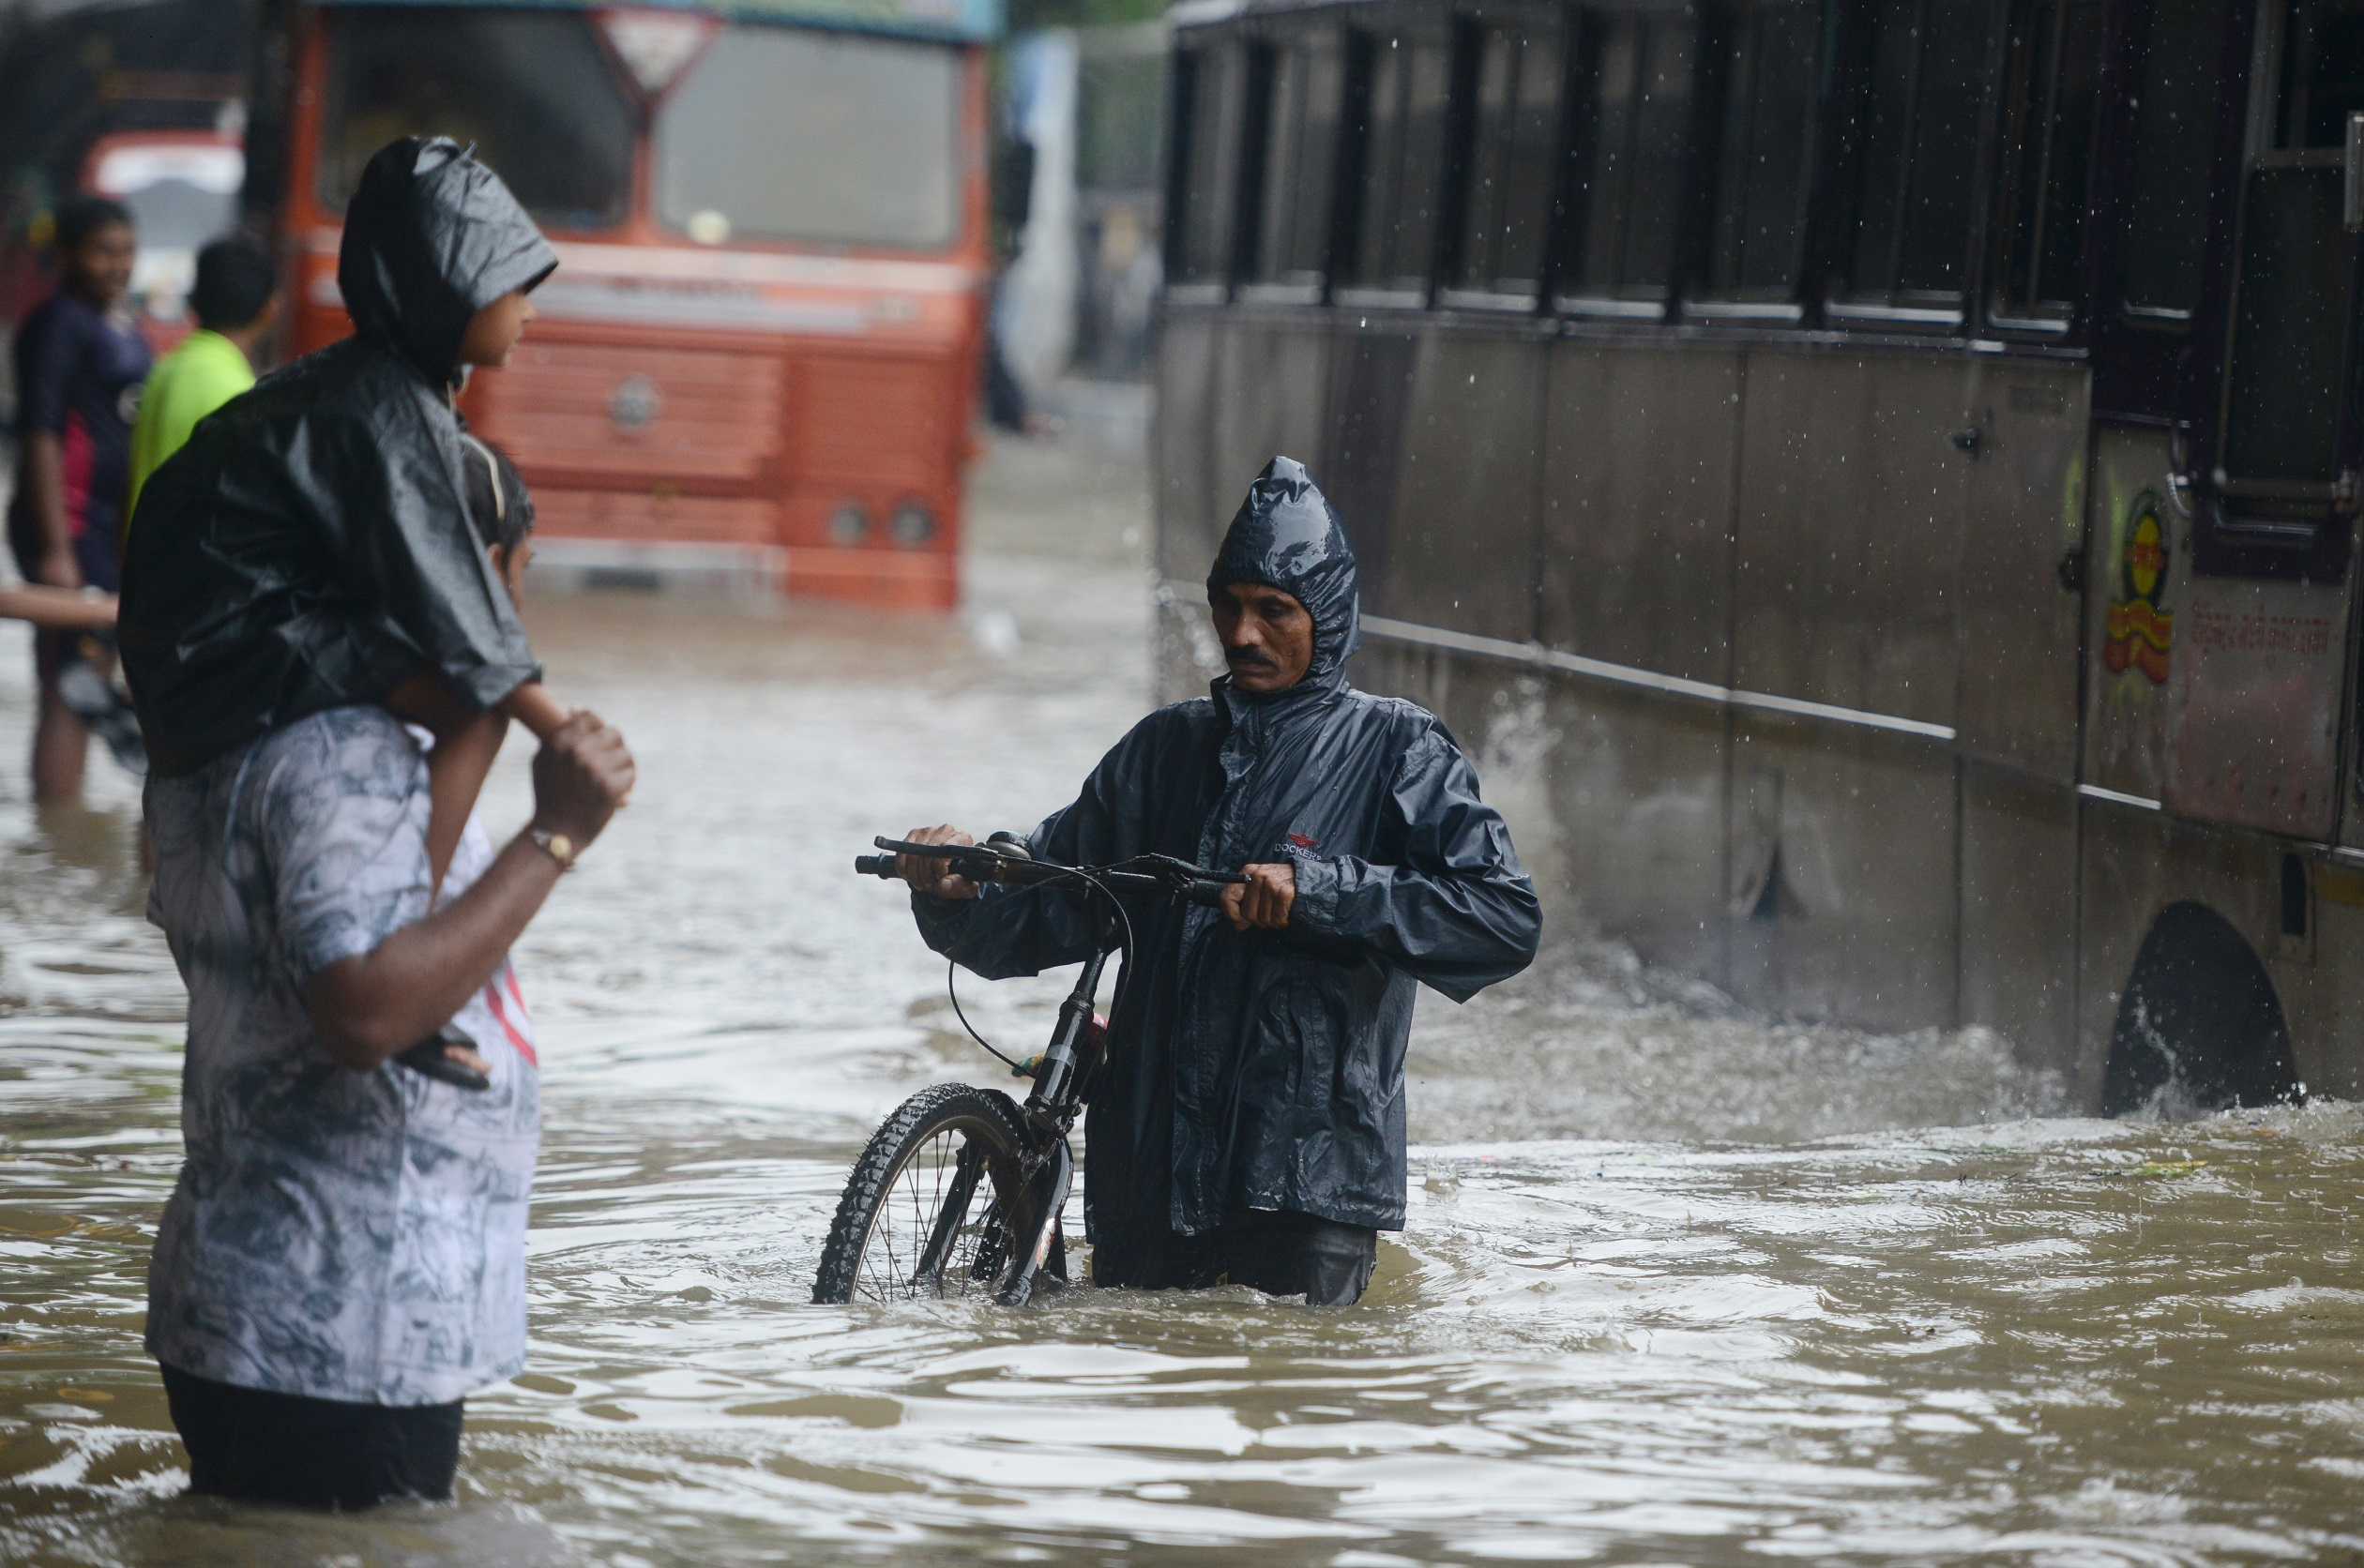 Vehicles and people struggle to wade through waterlogged streets in Mumbai on Tuesday. Credit: Punit Paranjpe/AFP